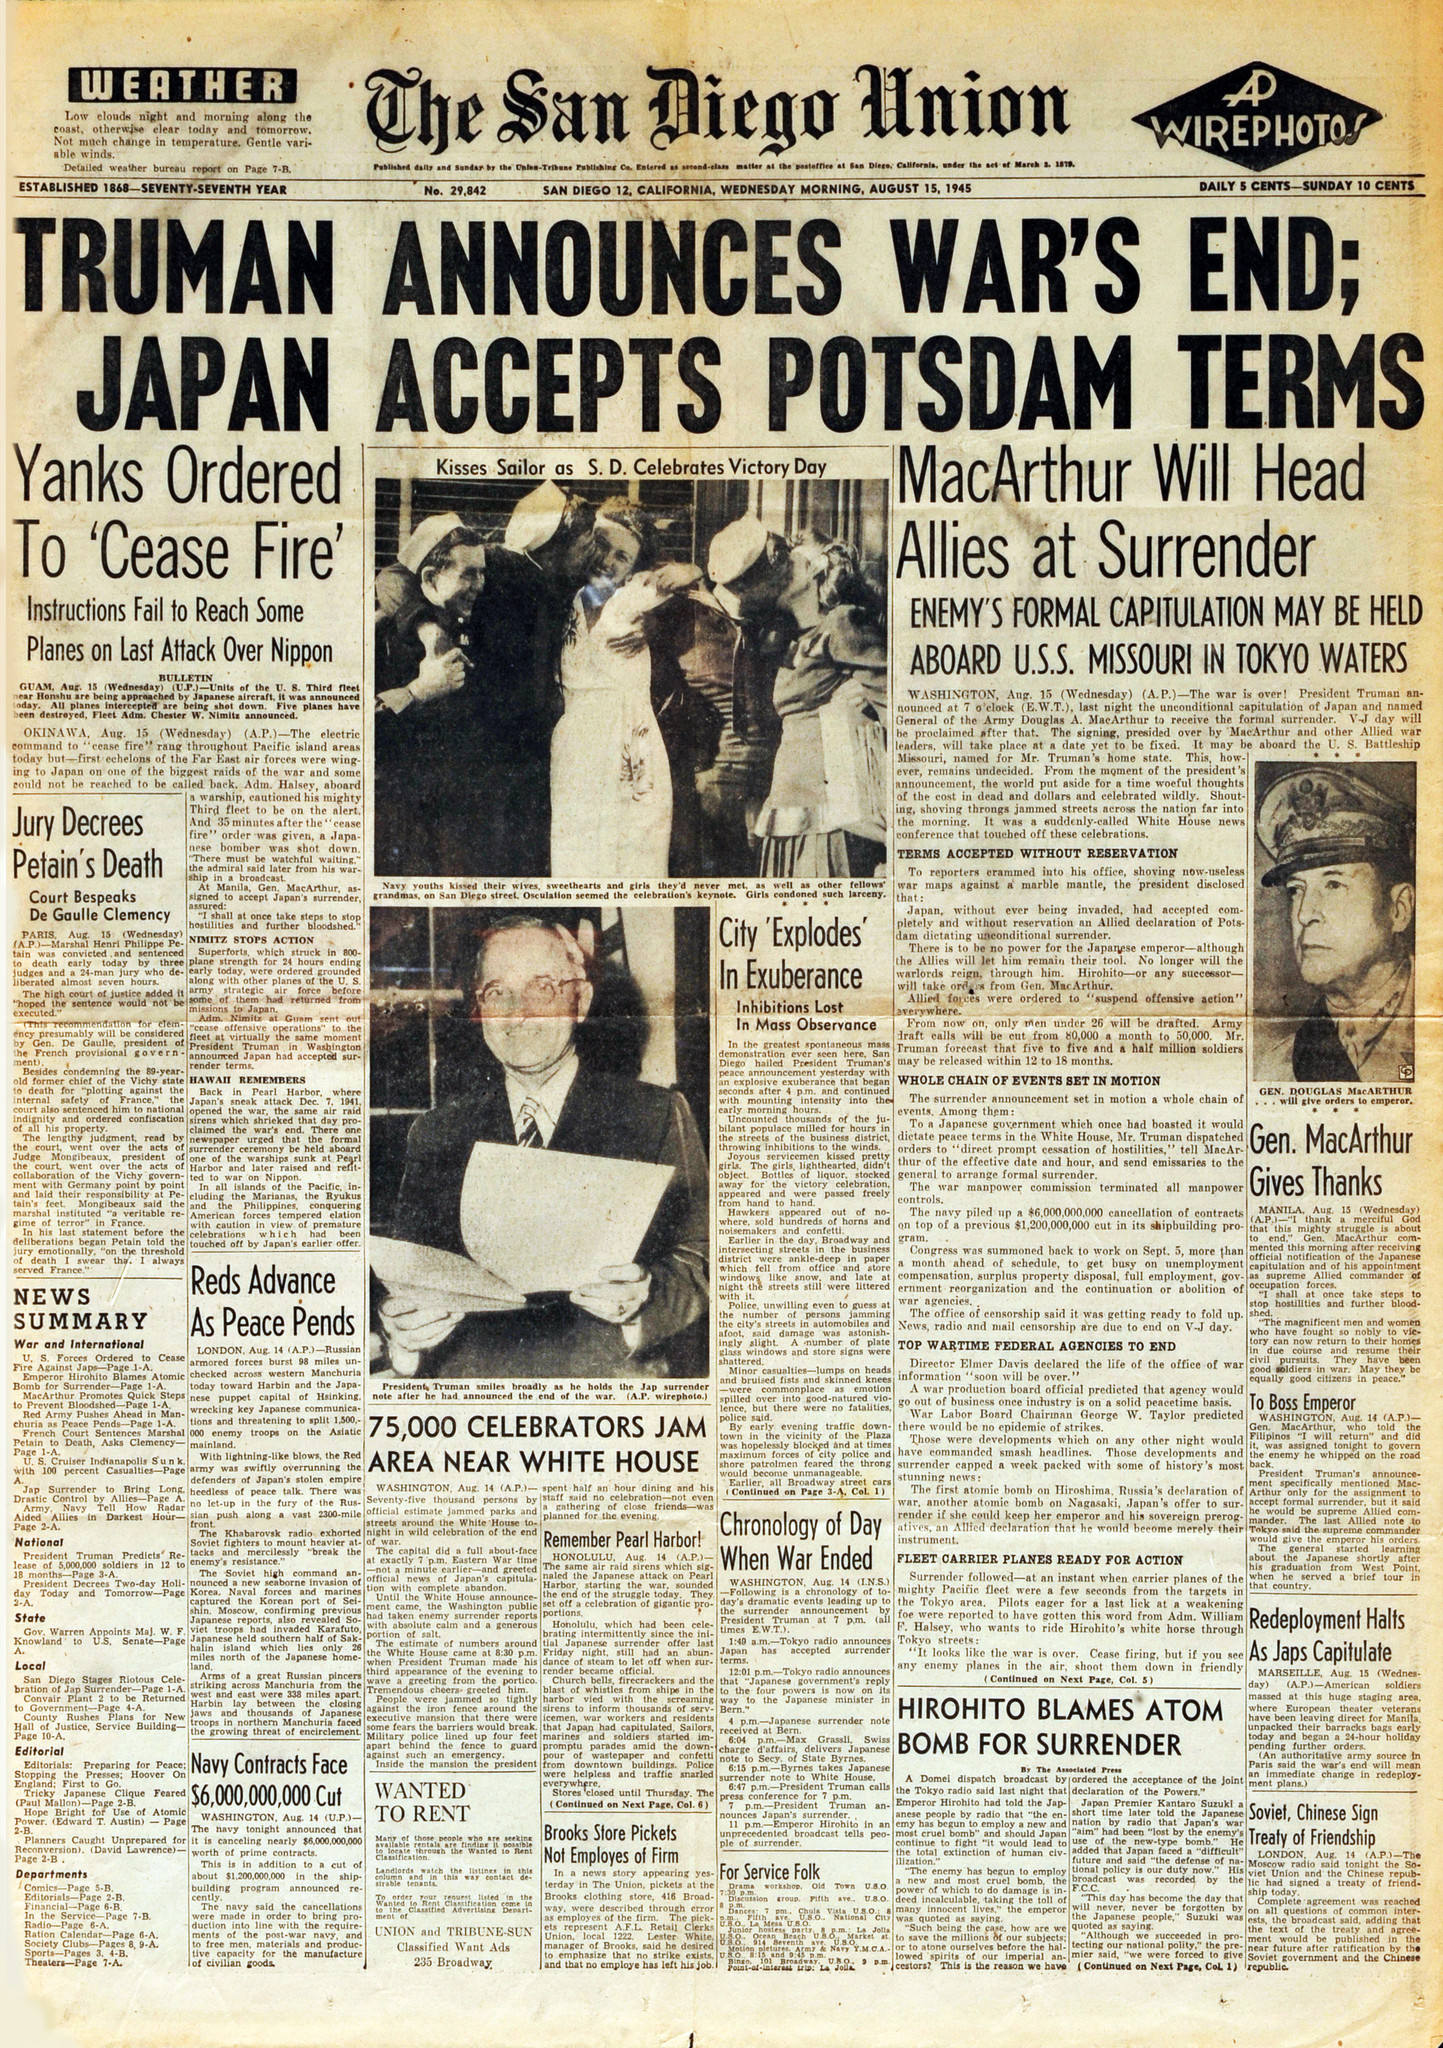 August 15, 1945